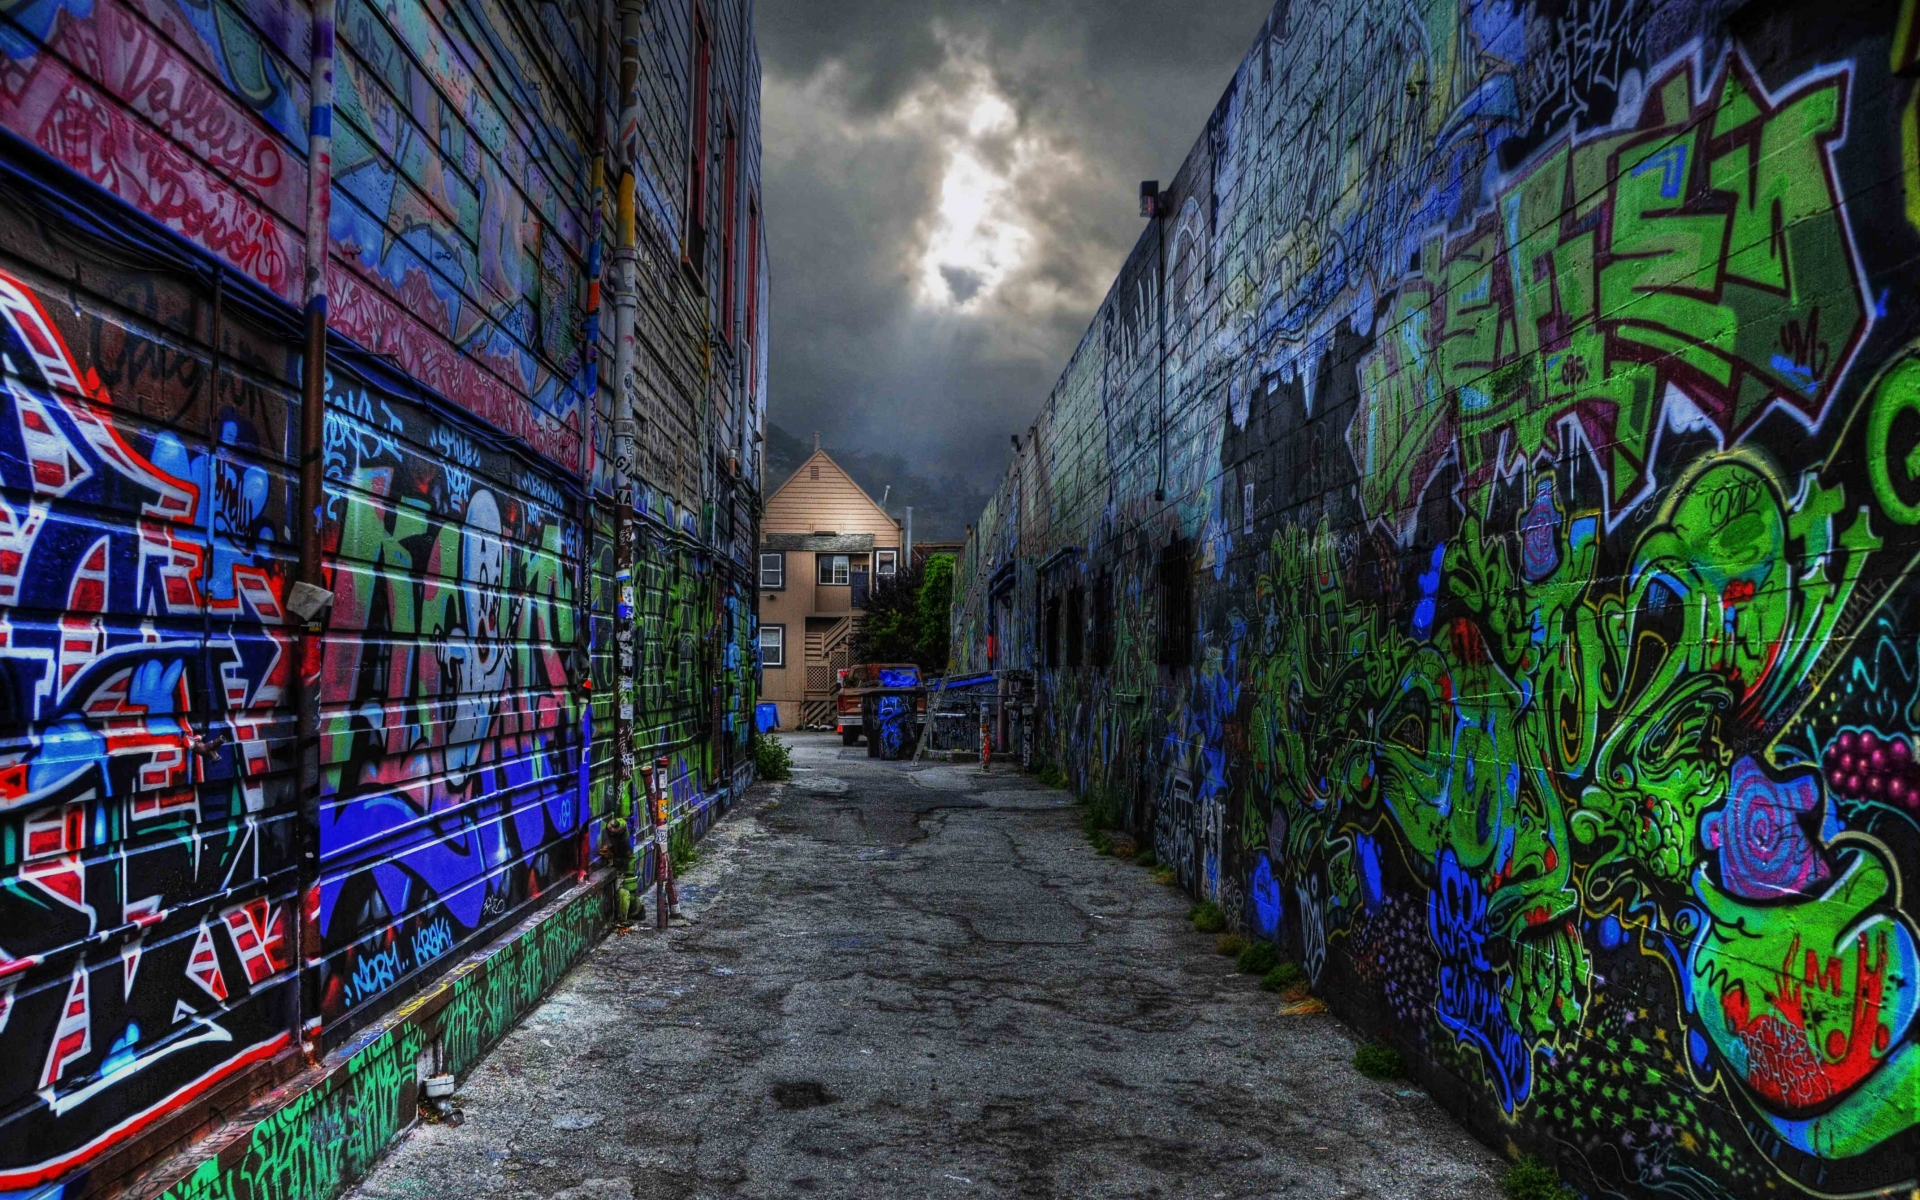 urban graffiti art wallpaper - photo #6